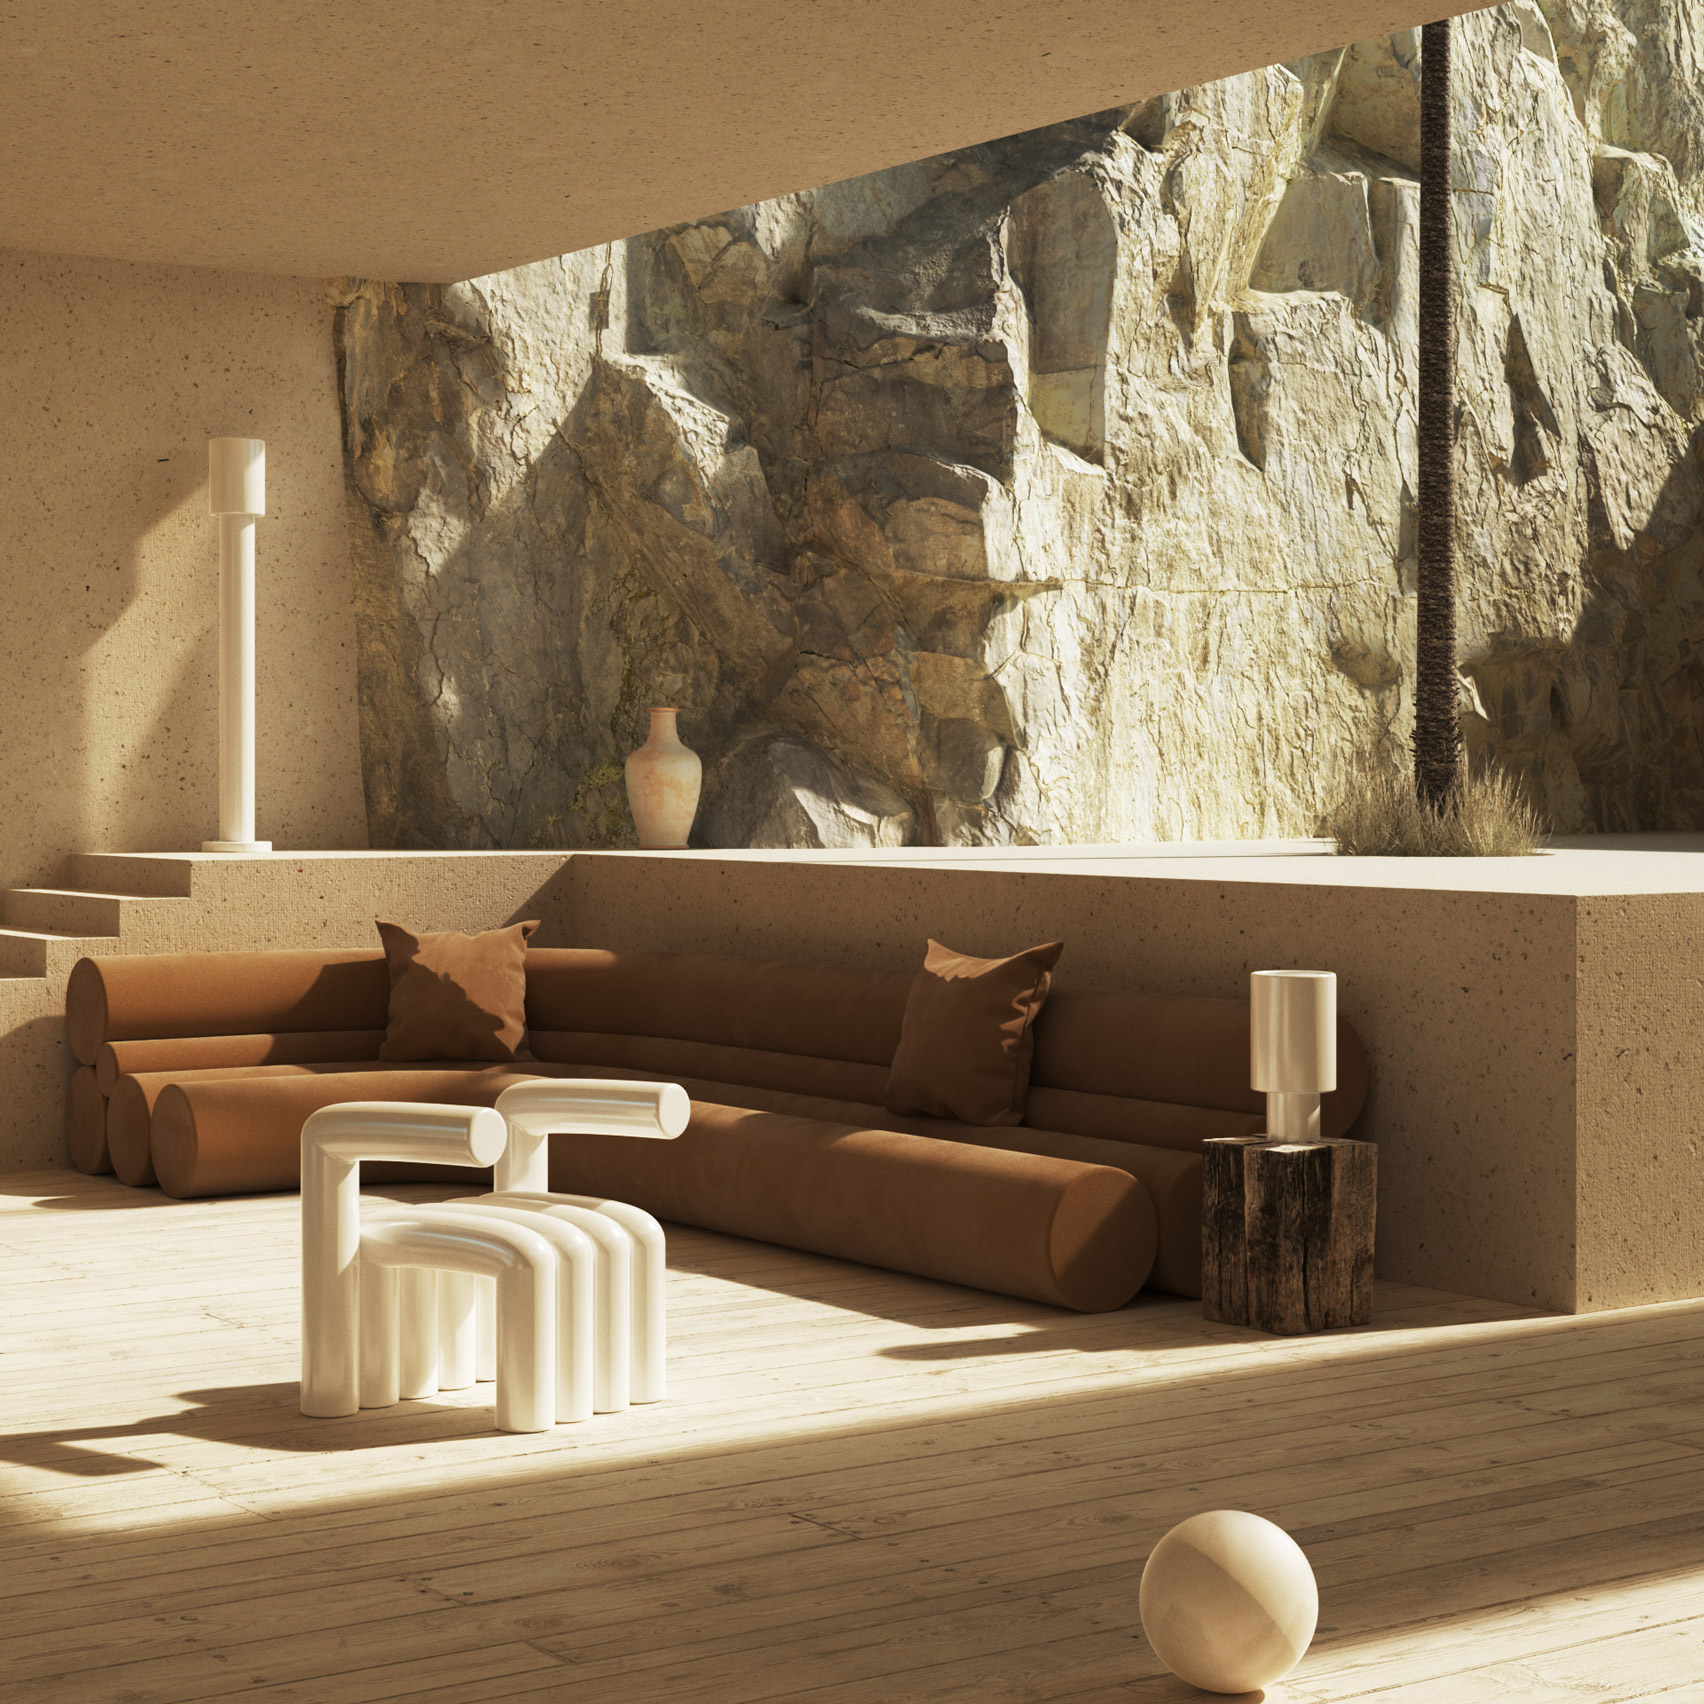 3D-visuals-trends-for-2021-2022-interior-and-exterior-spaces10